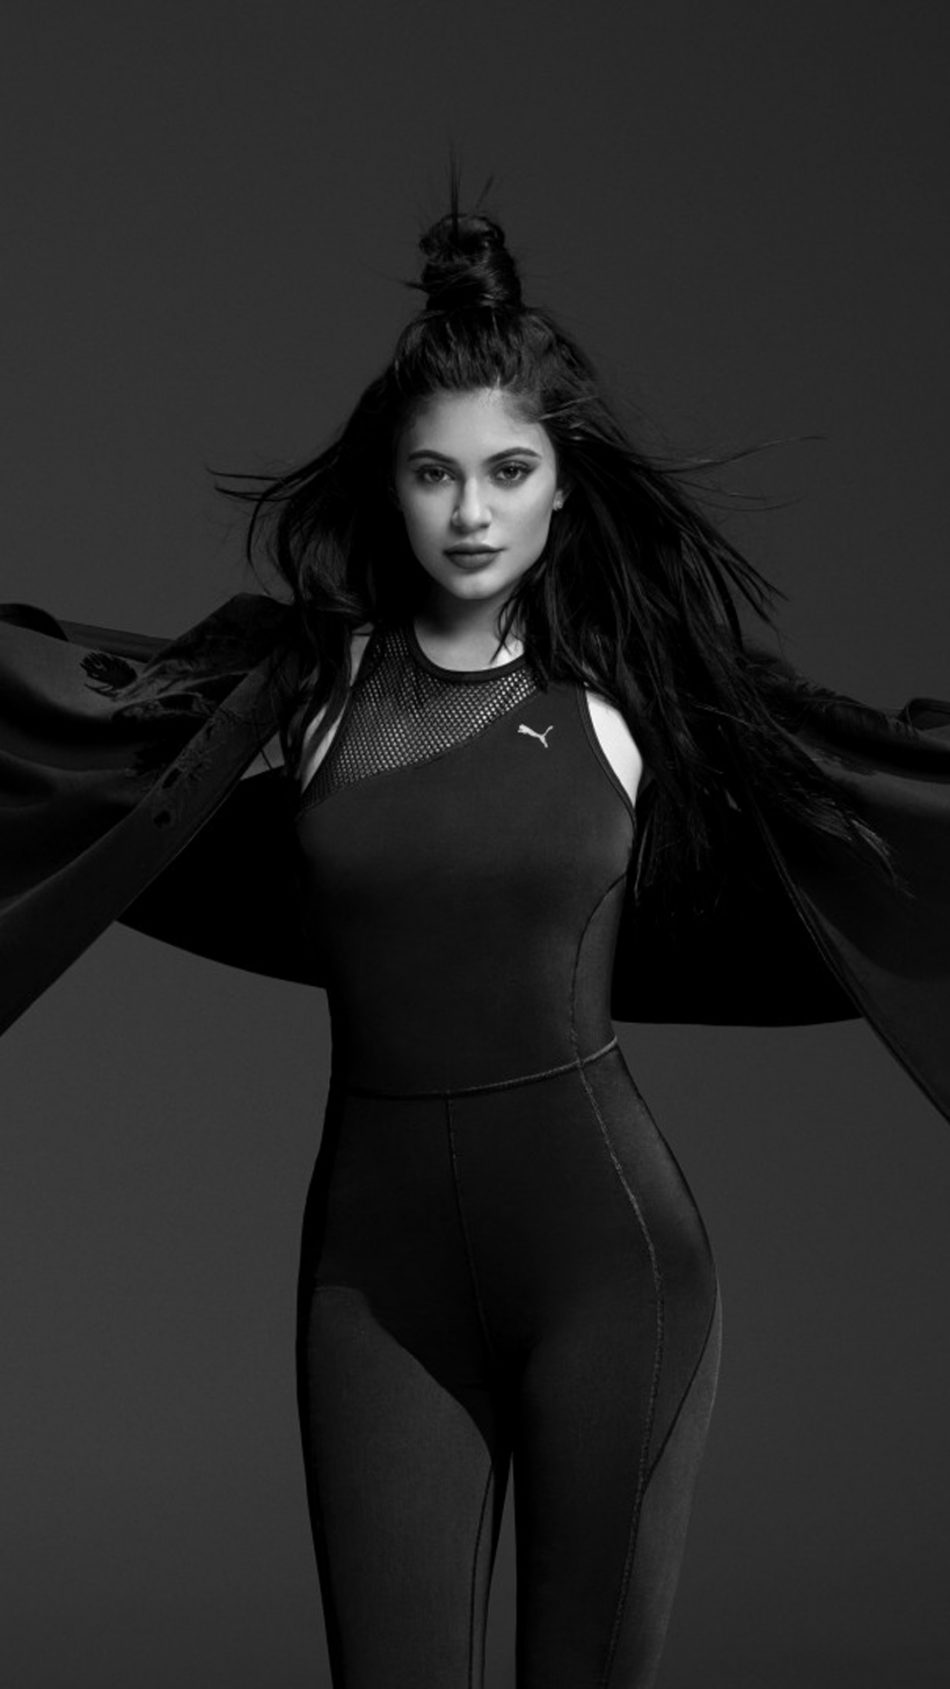 Kylie Jenner Puma Black & White Photoshoot HD Mobile Wallpaper